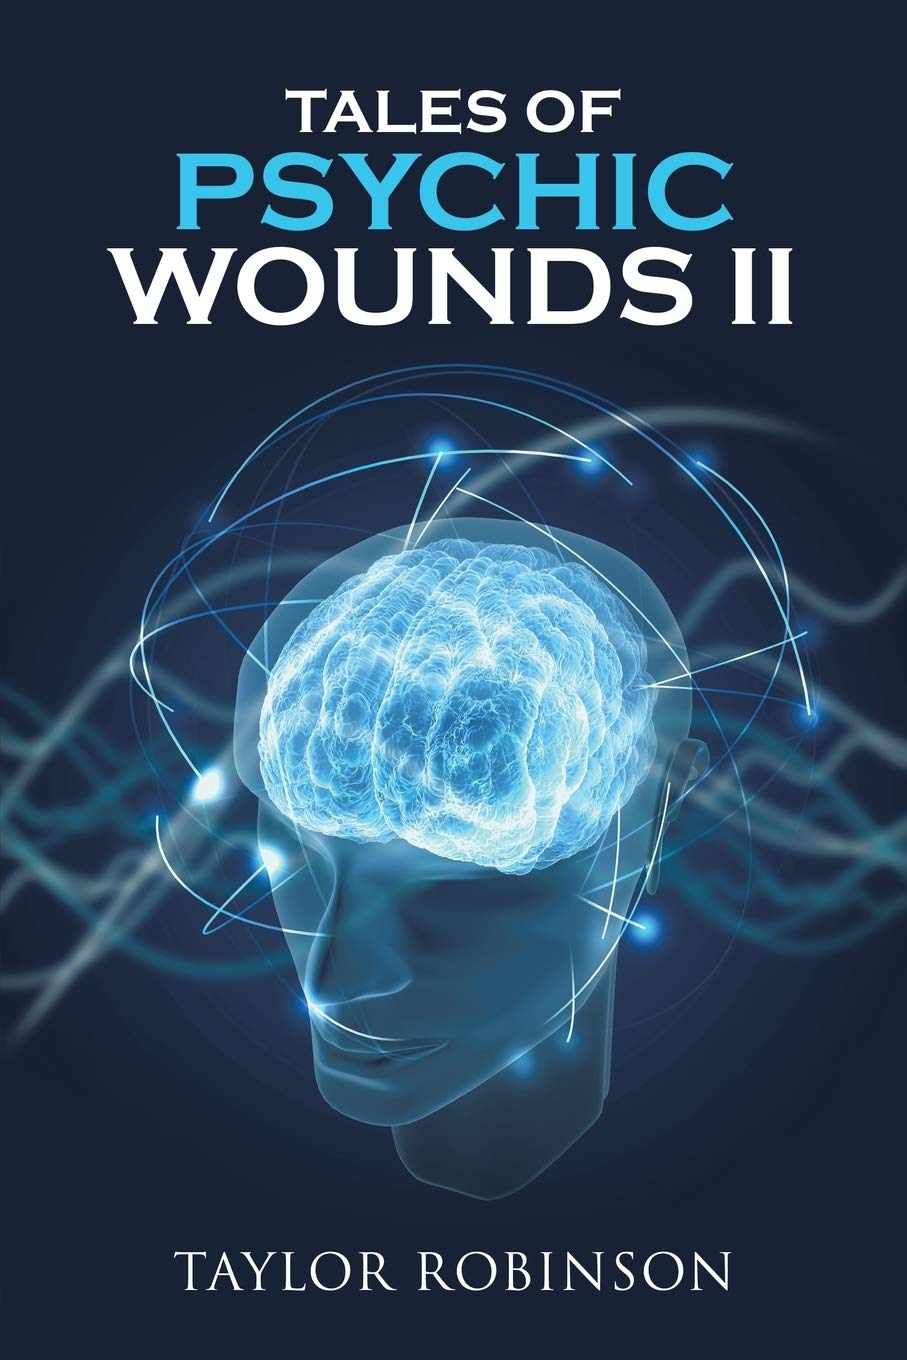 Tales of Psychic Wounds II